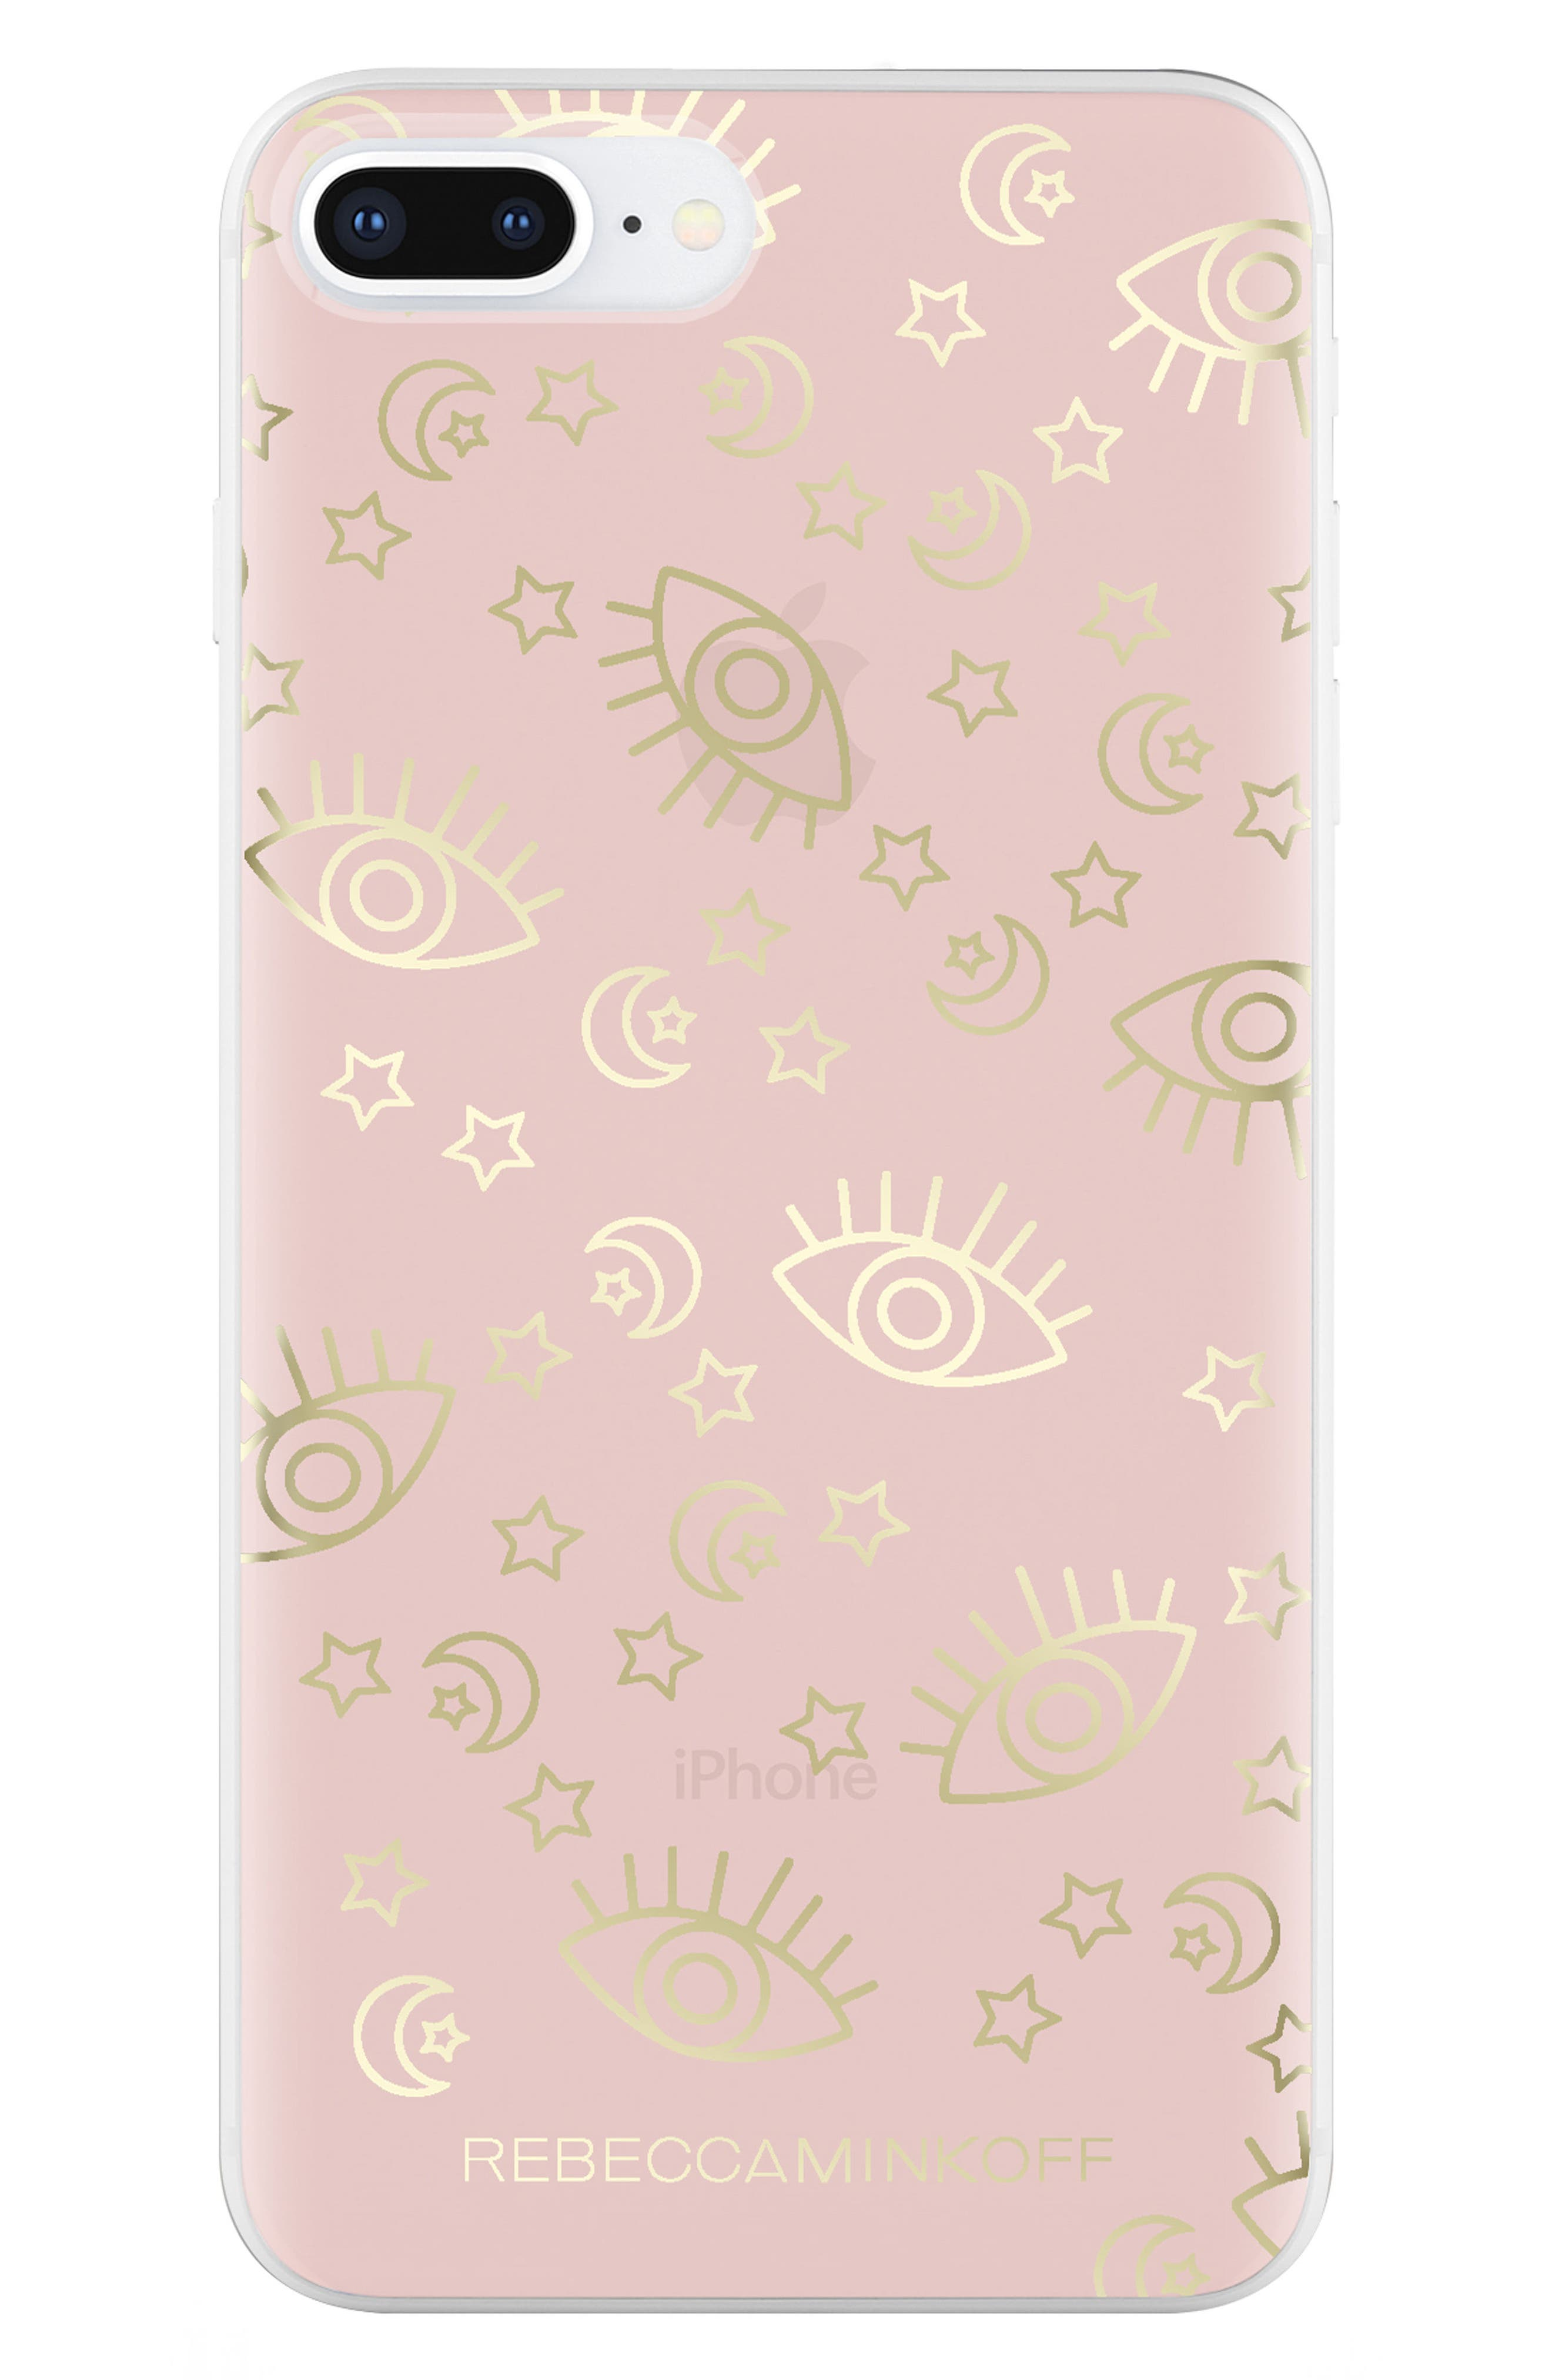 Metallic Galaxy Icon iPhone 7/8 & 7/8 Plus Case,                             Alternate thumbnail 7, color,                             ROSE GOLD/ GOLD FOIL